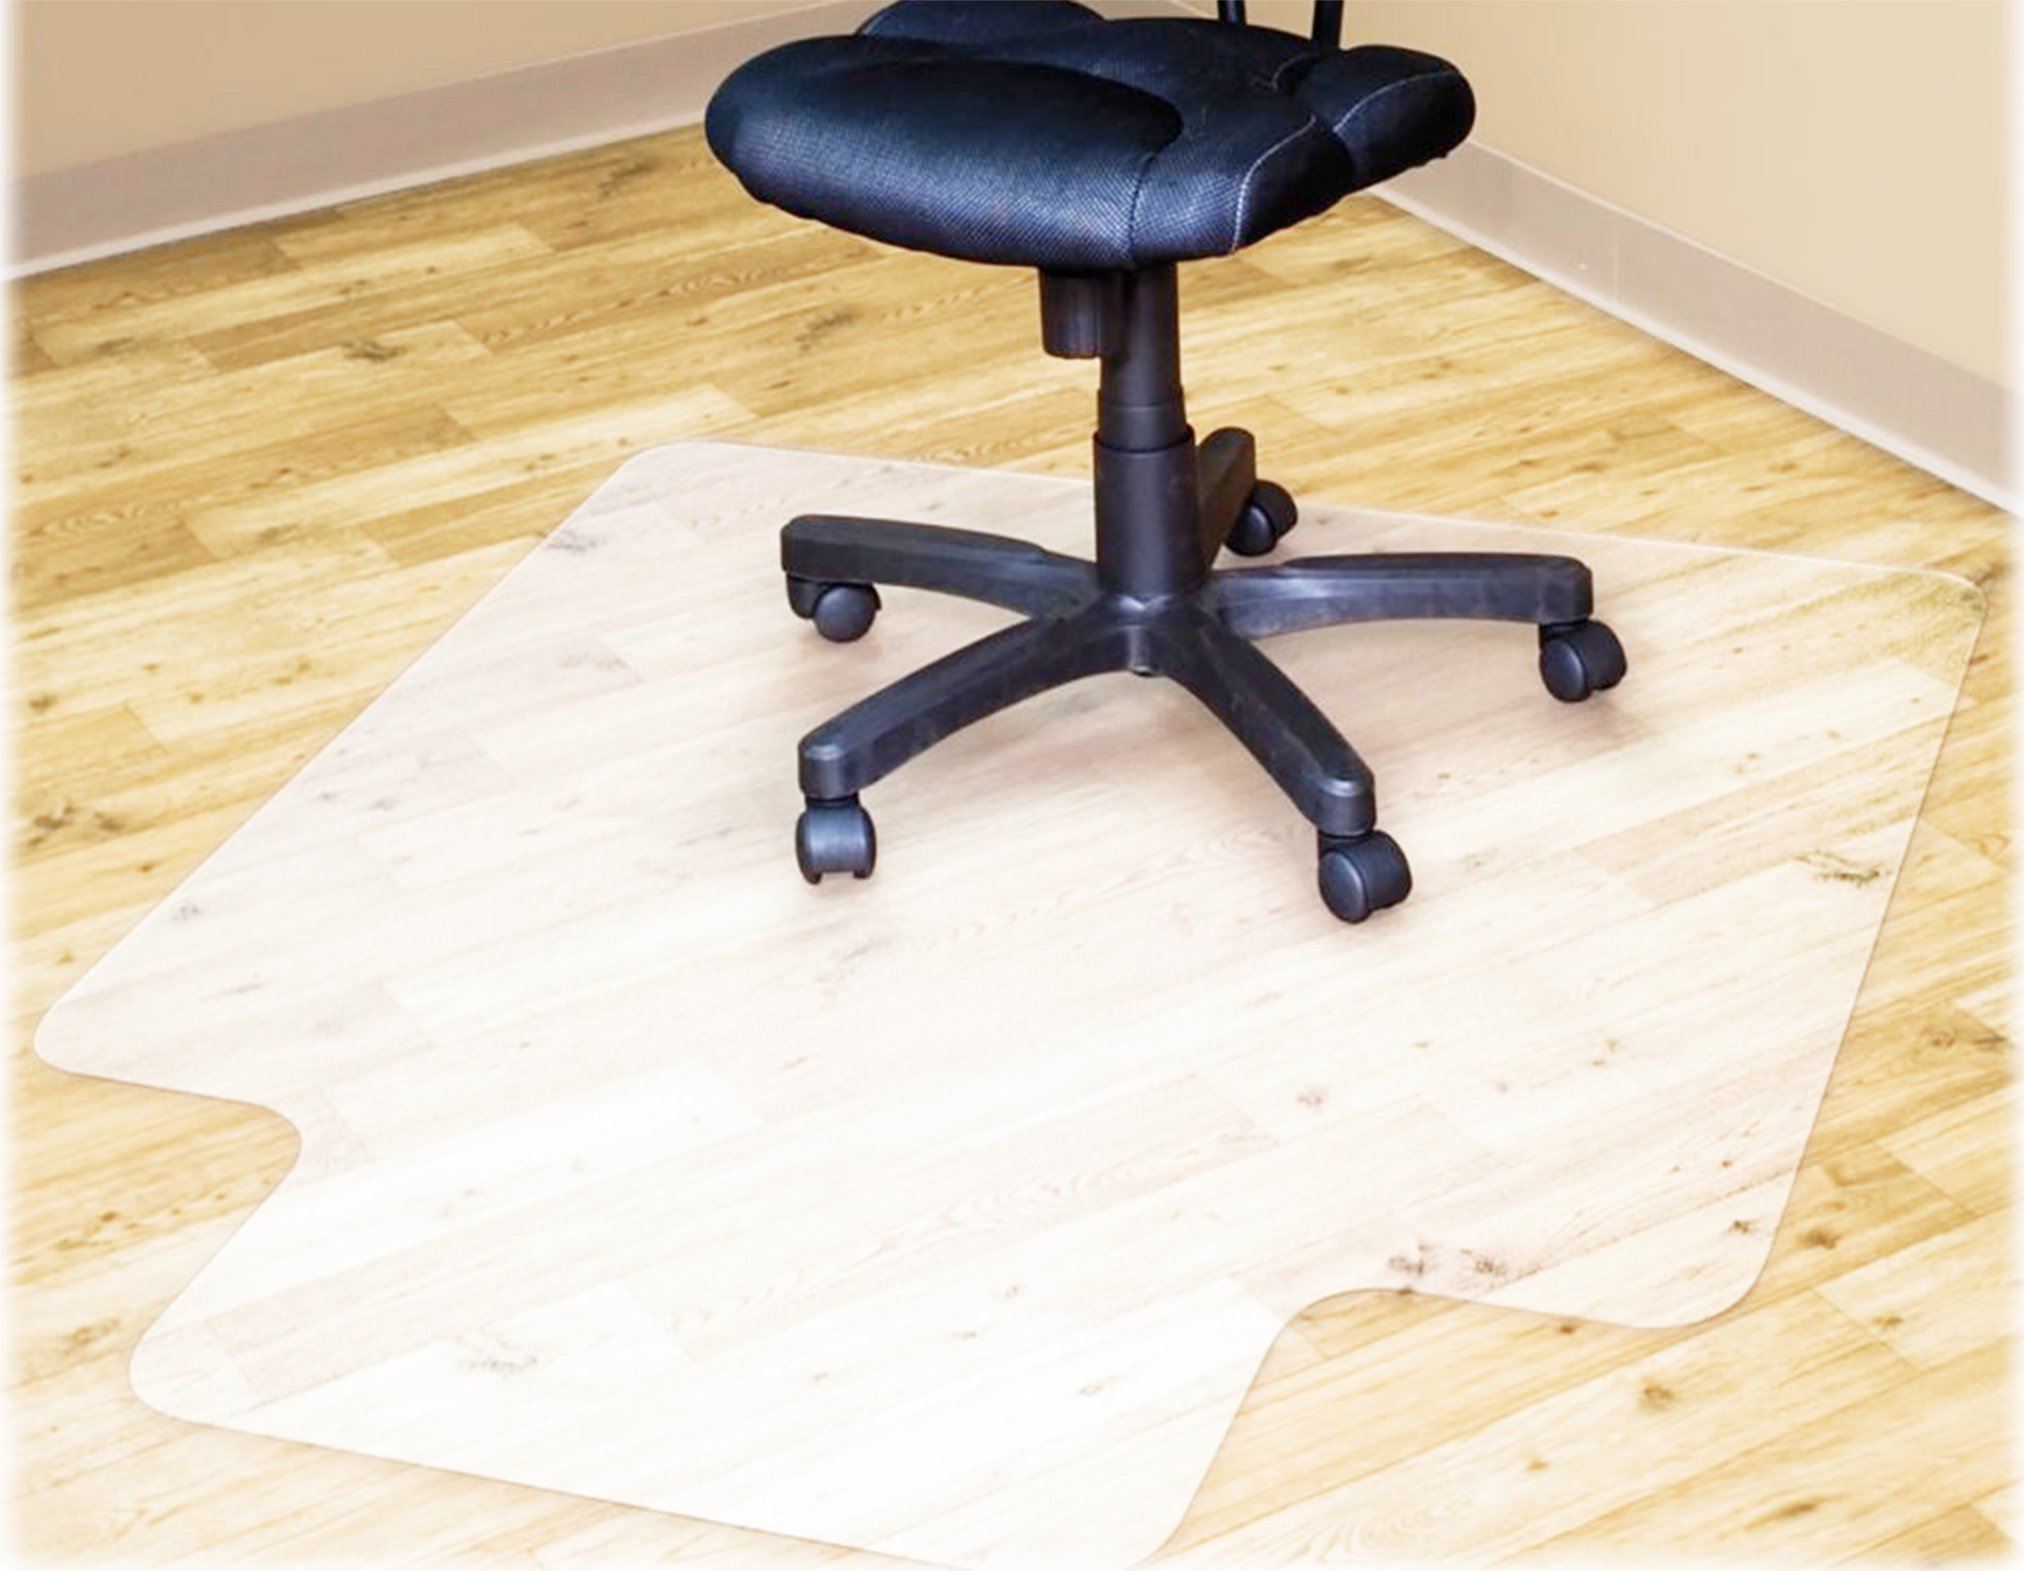 Polytene Office Chair Mat 48''x36''Hard Floor Protection with Lip Anti Slide Coating on The Underside,Semi Clear